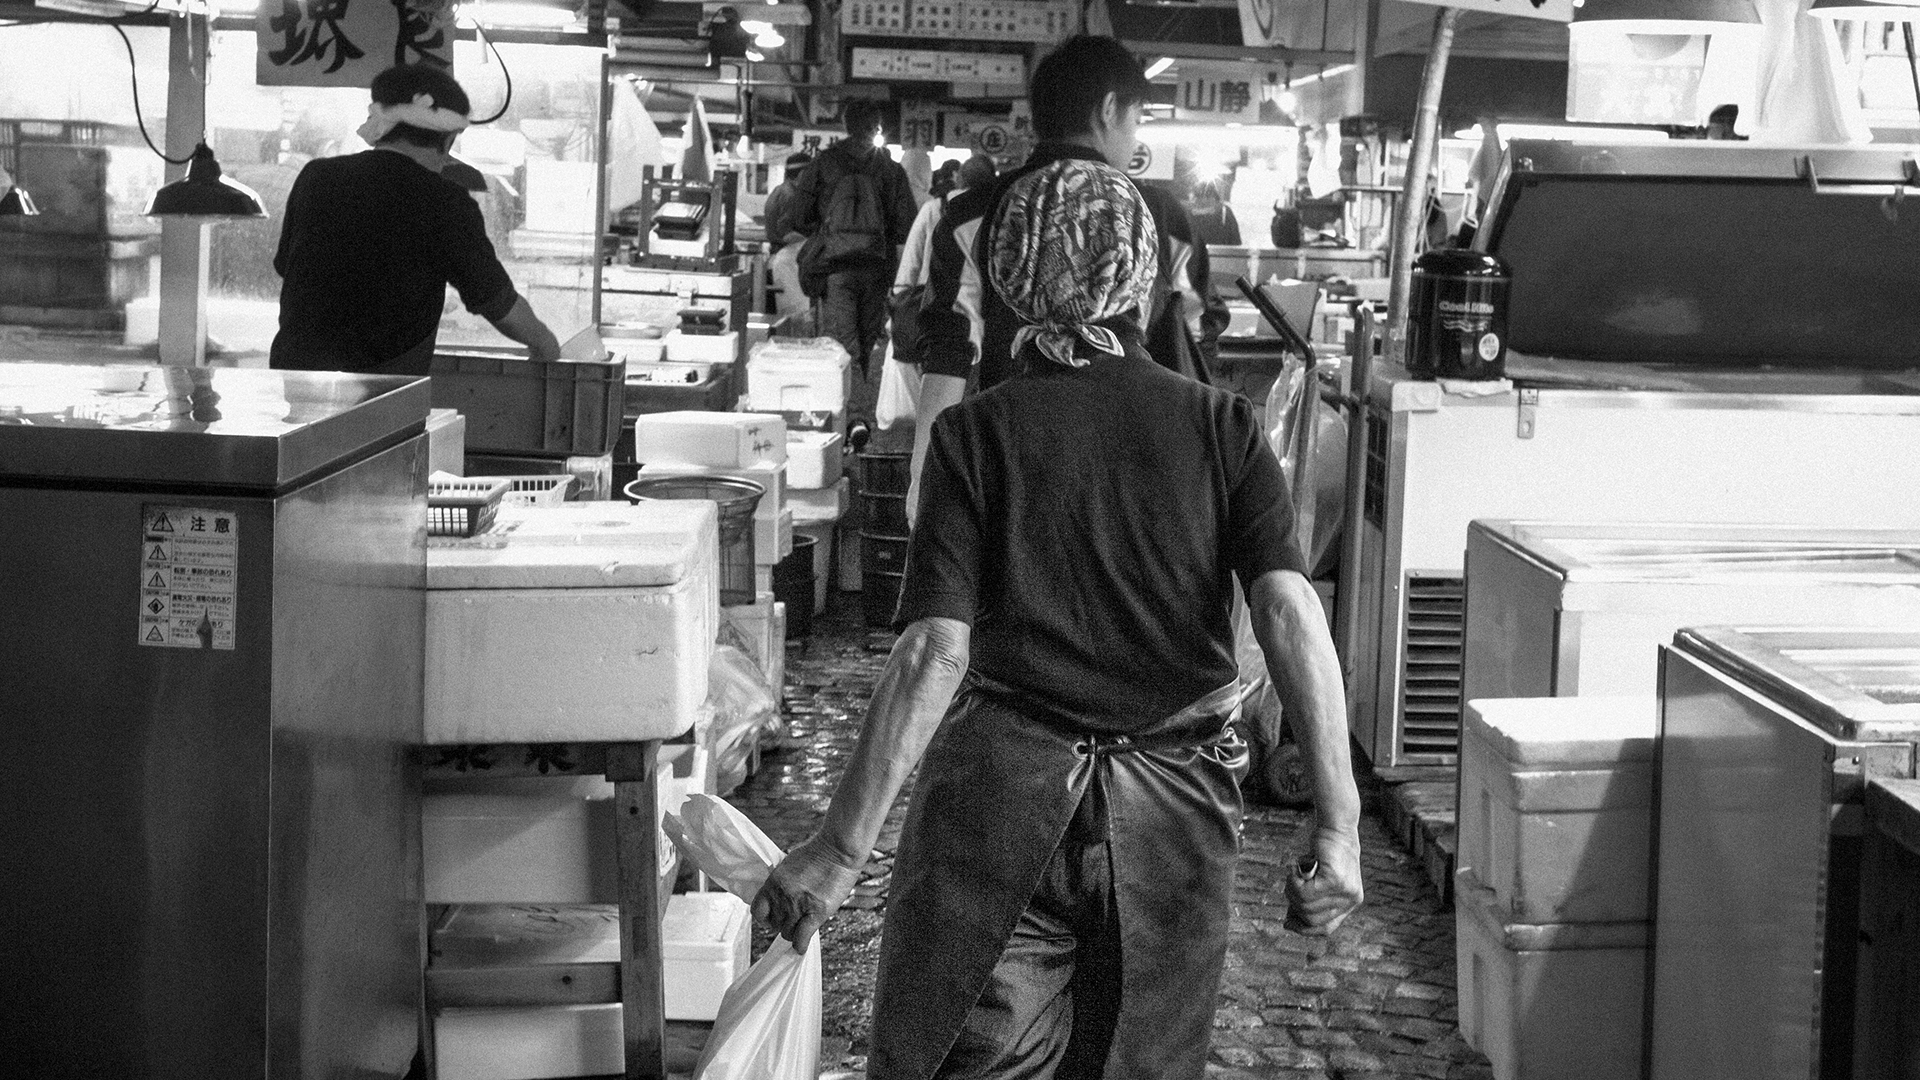 Worker at the old Tsukiji fish market in Tokyo, black and white photo.